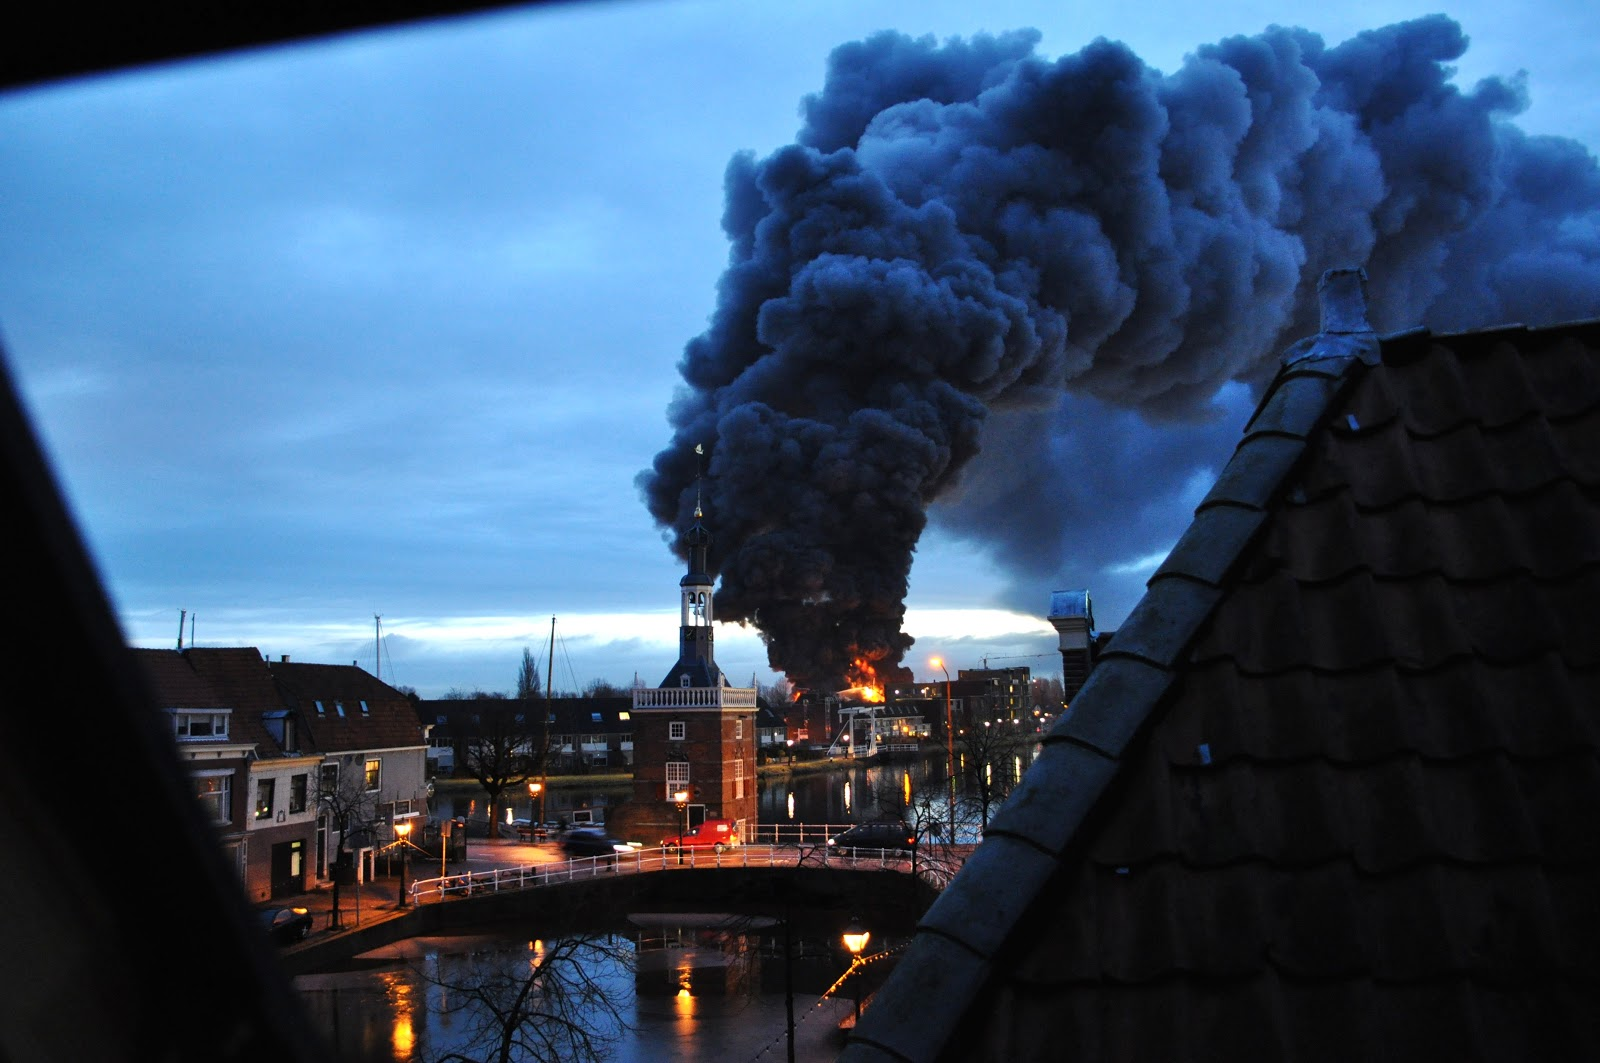 Houthandel Alkmaar Luna North Holland Fire In Alkmaar